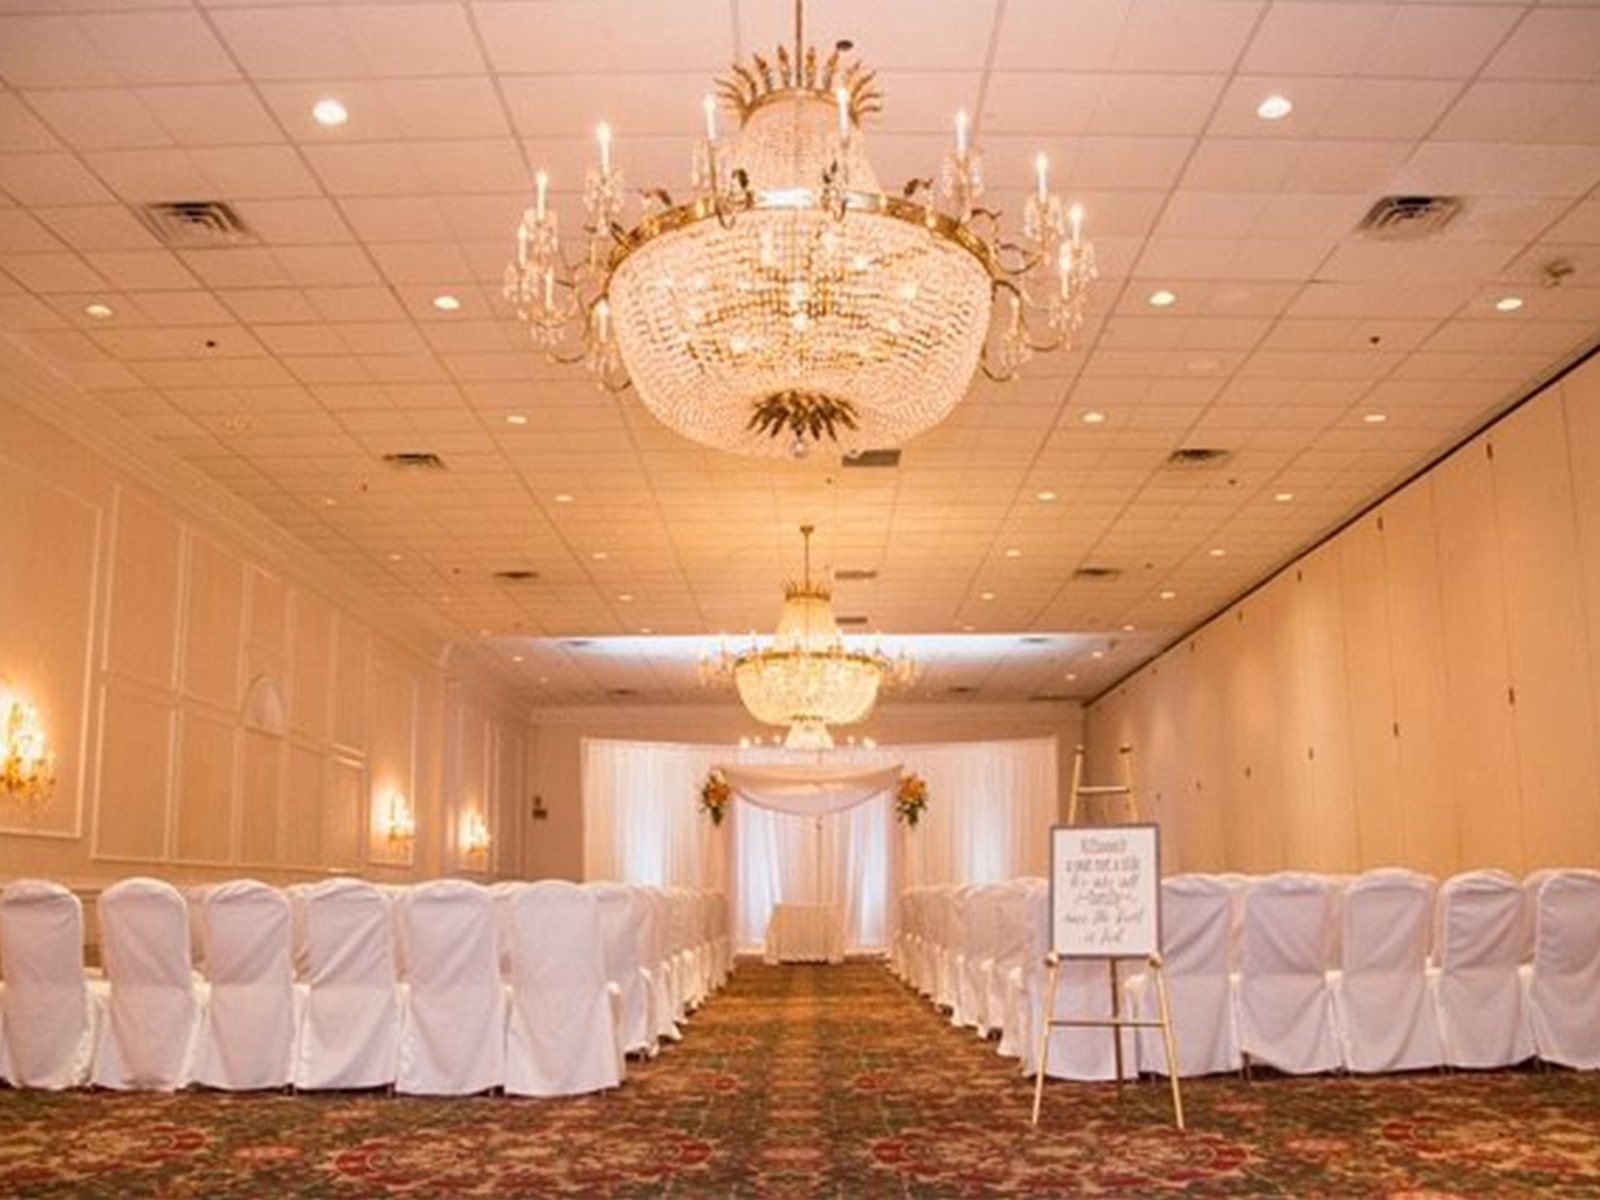 Indoor wedding ceremony from Presidential Catering